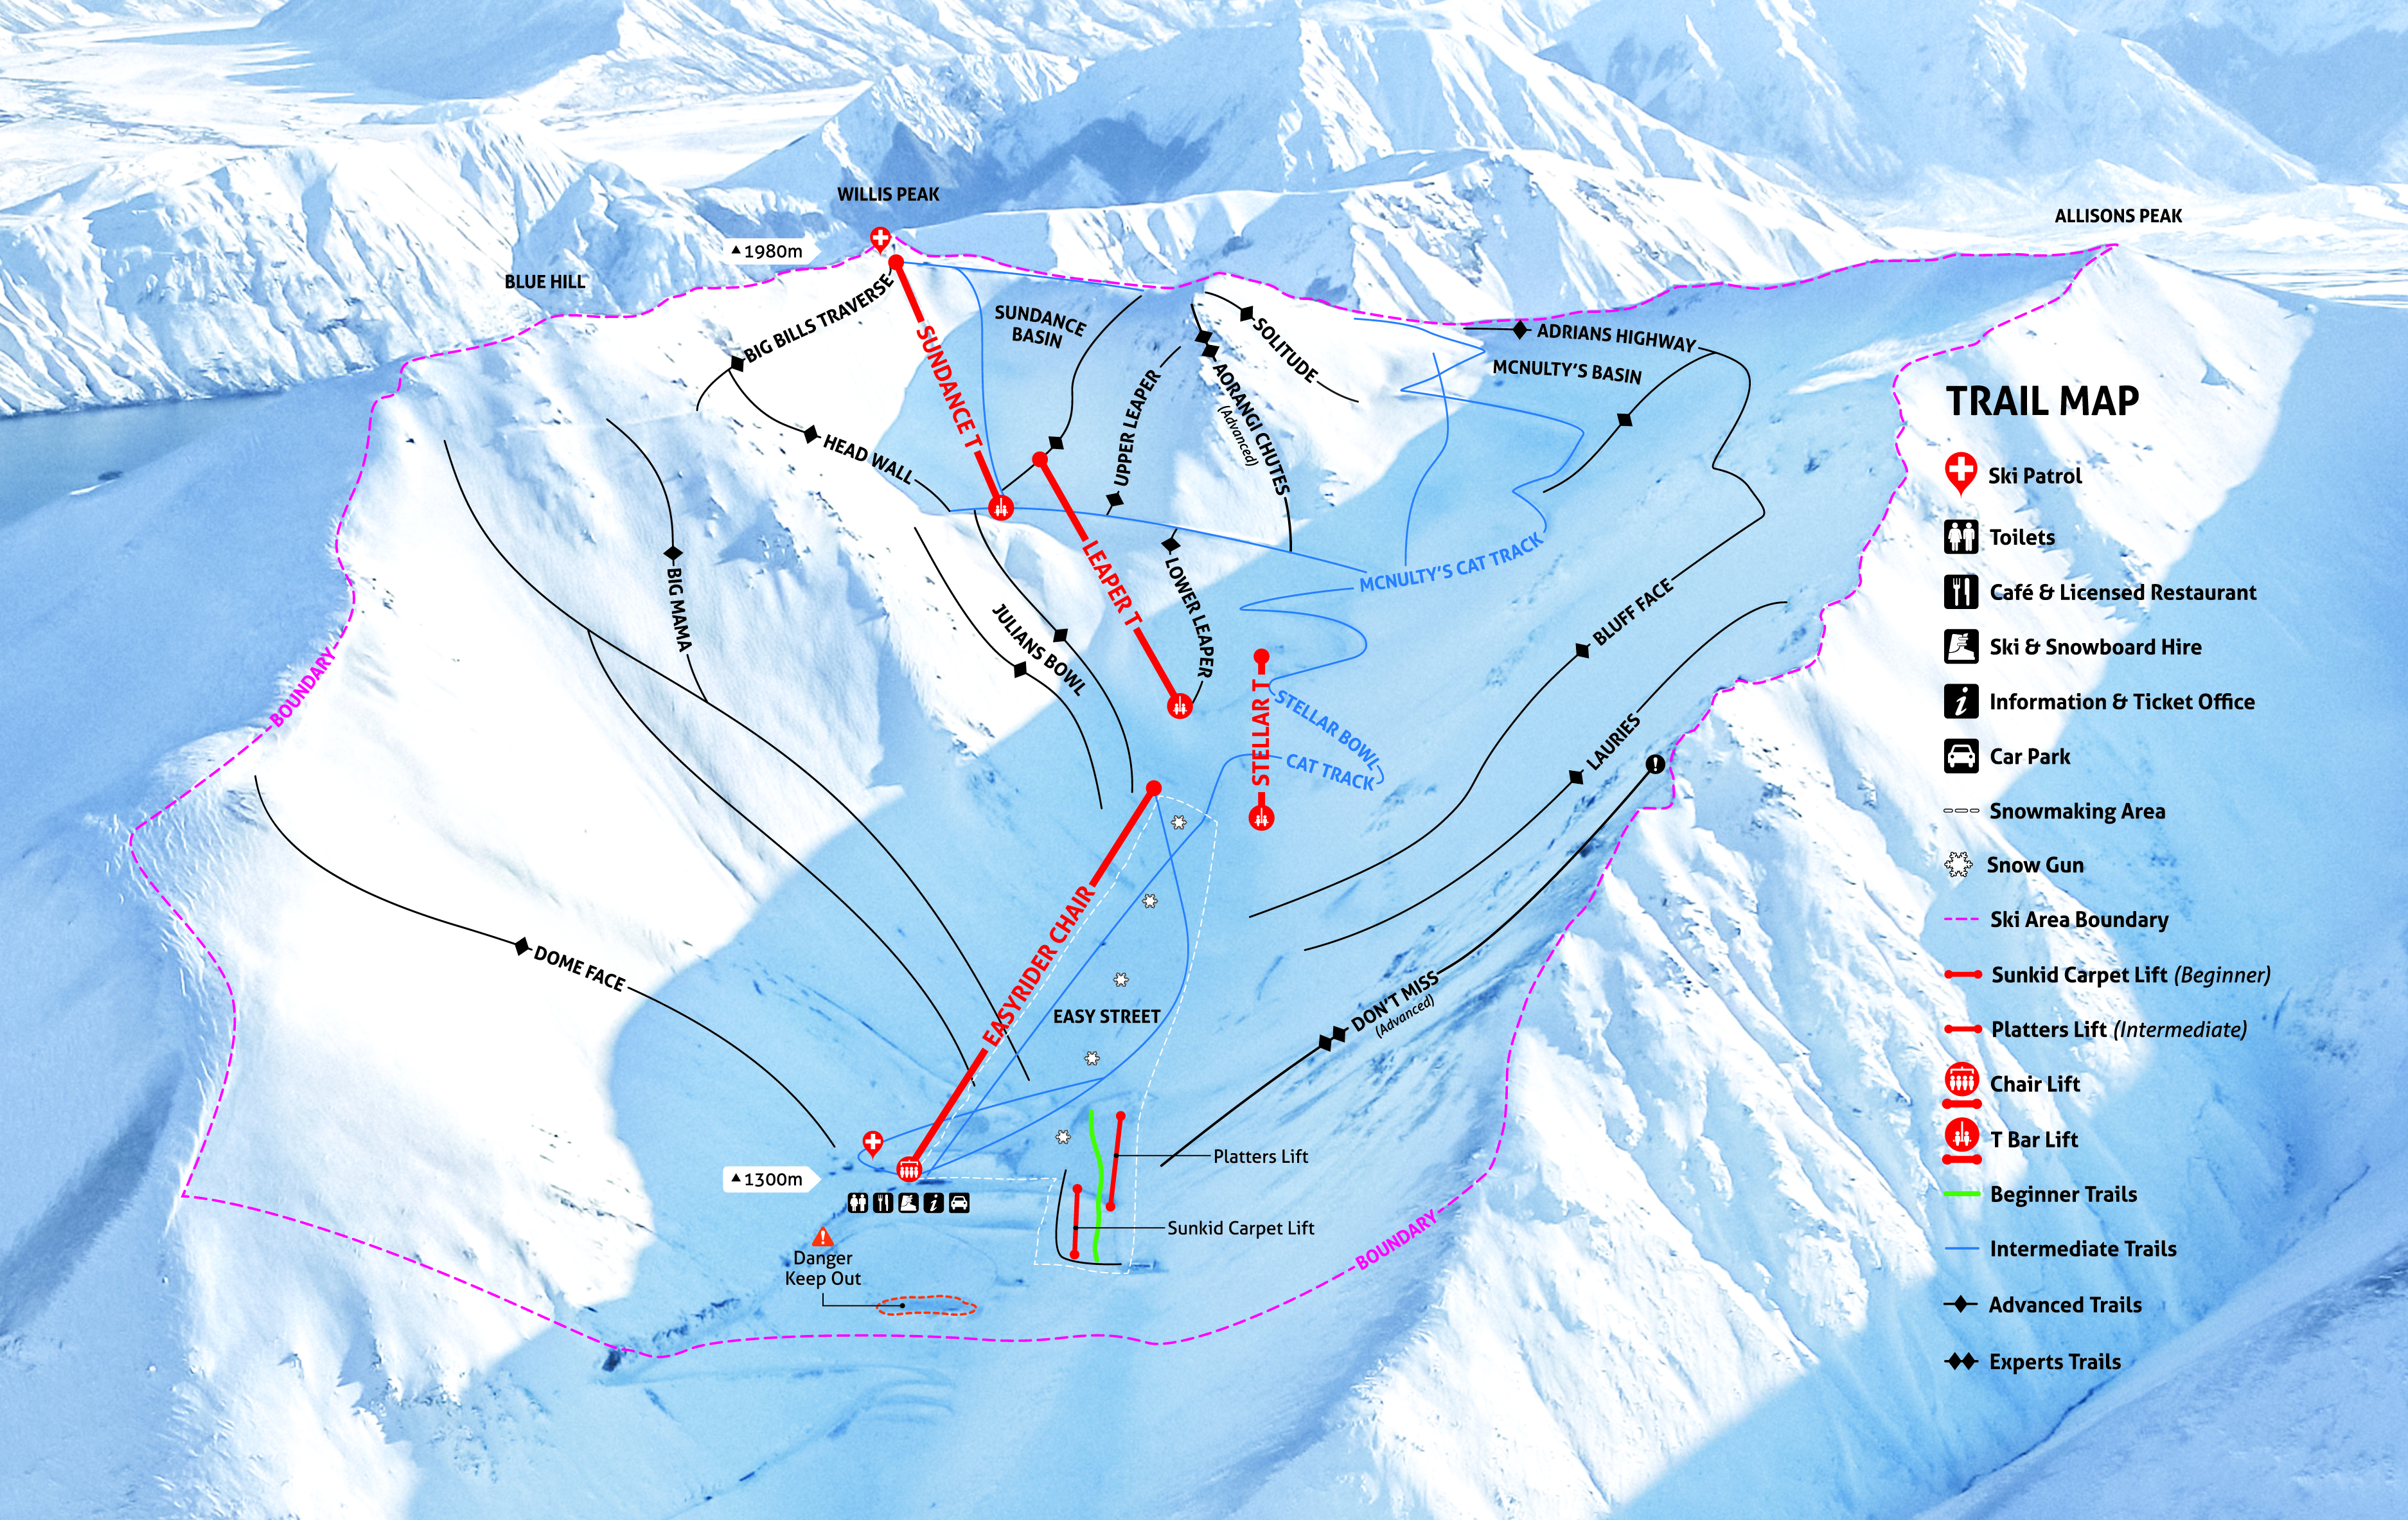 Porters Piste / Trail Map